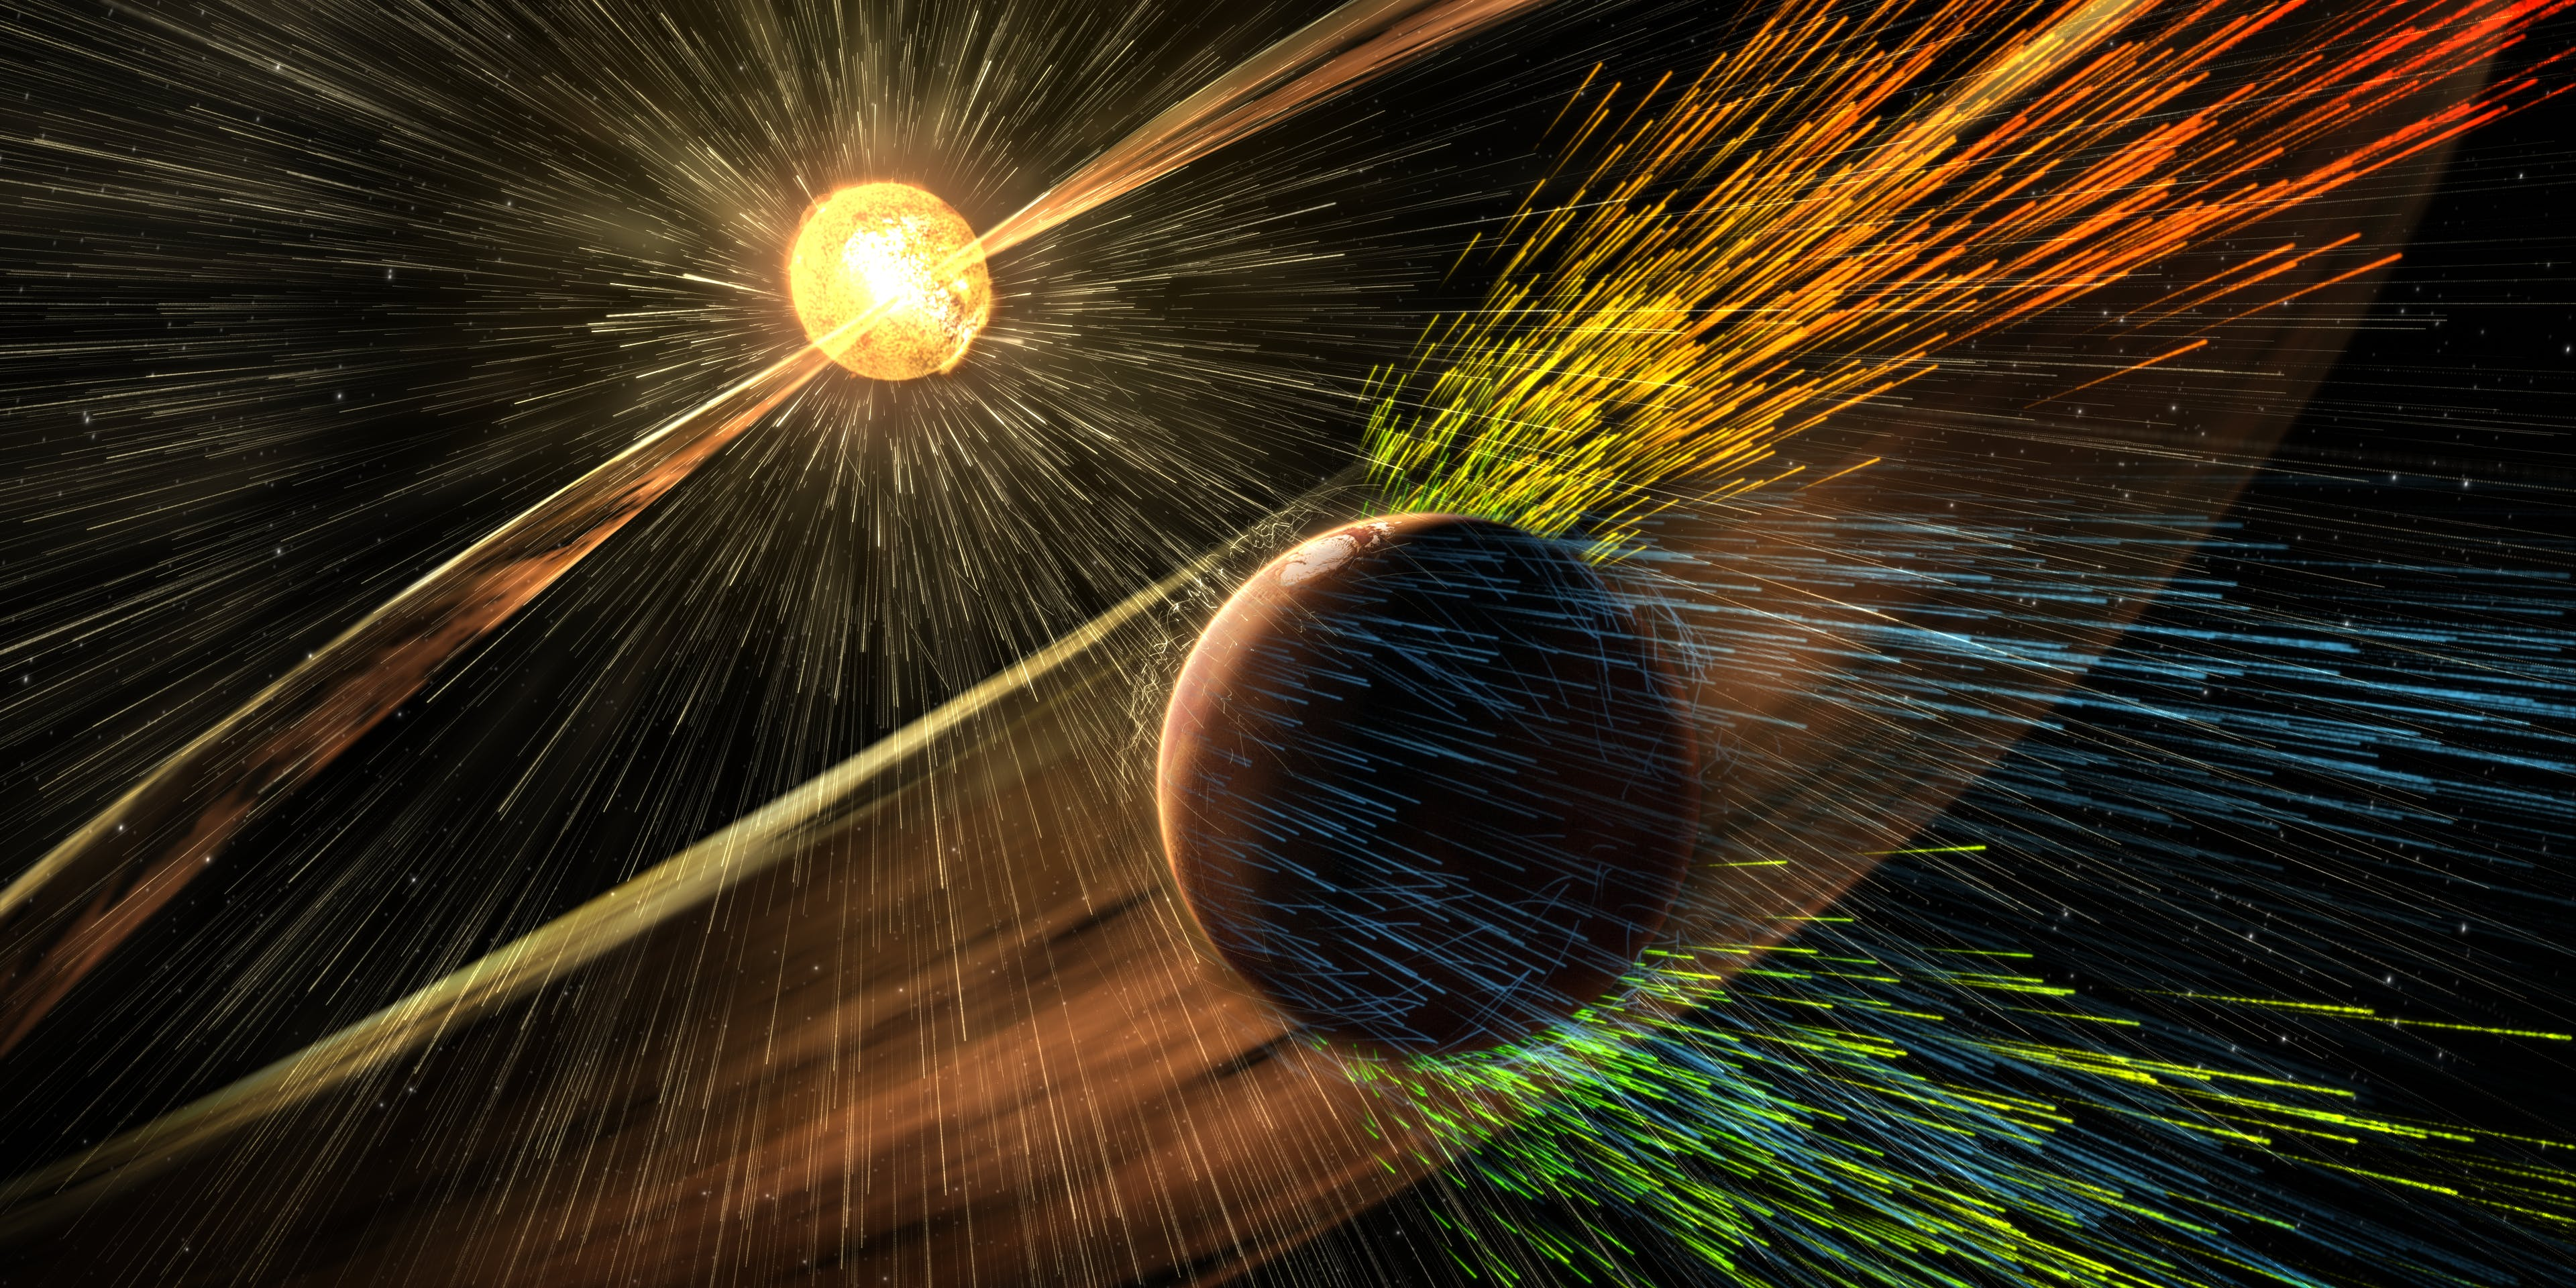 NASA Confirms Solar Winds Stripped Mars of Its Atmosphere